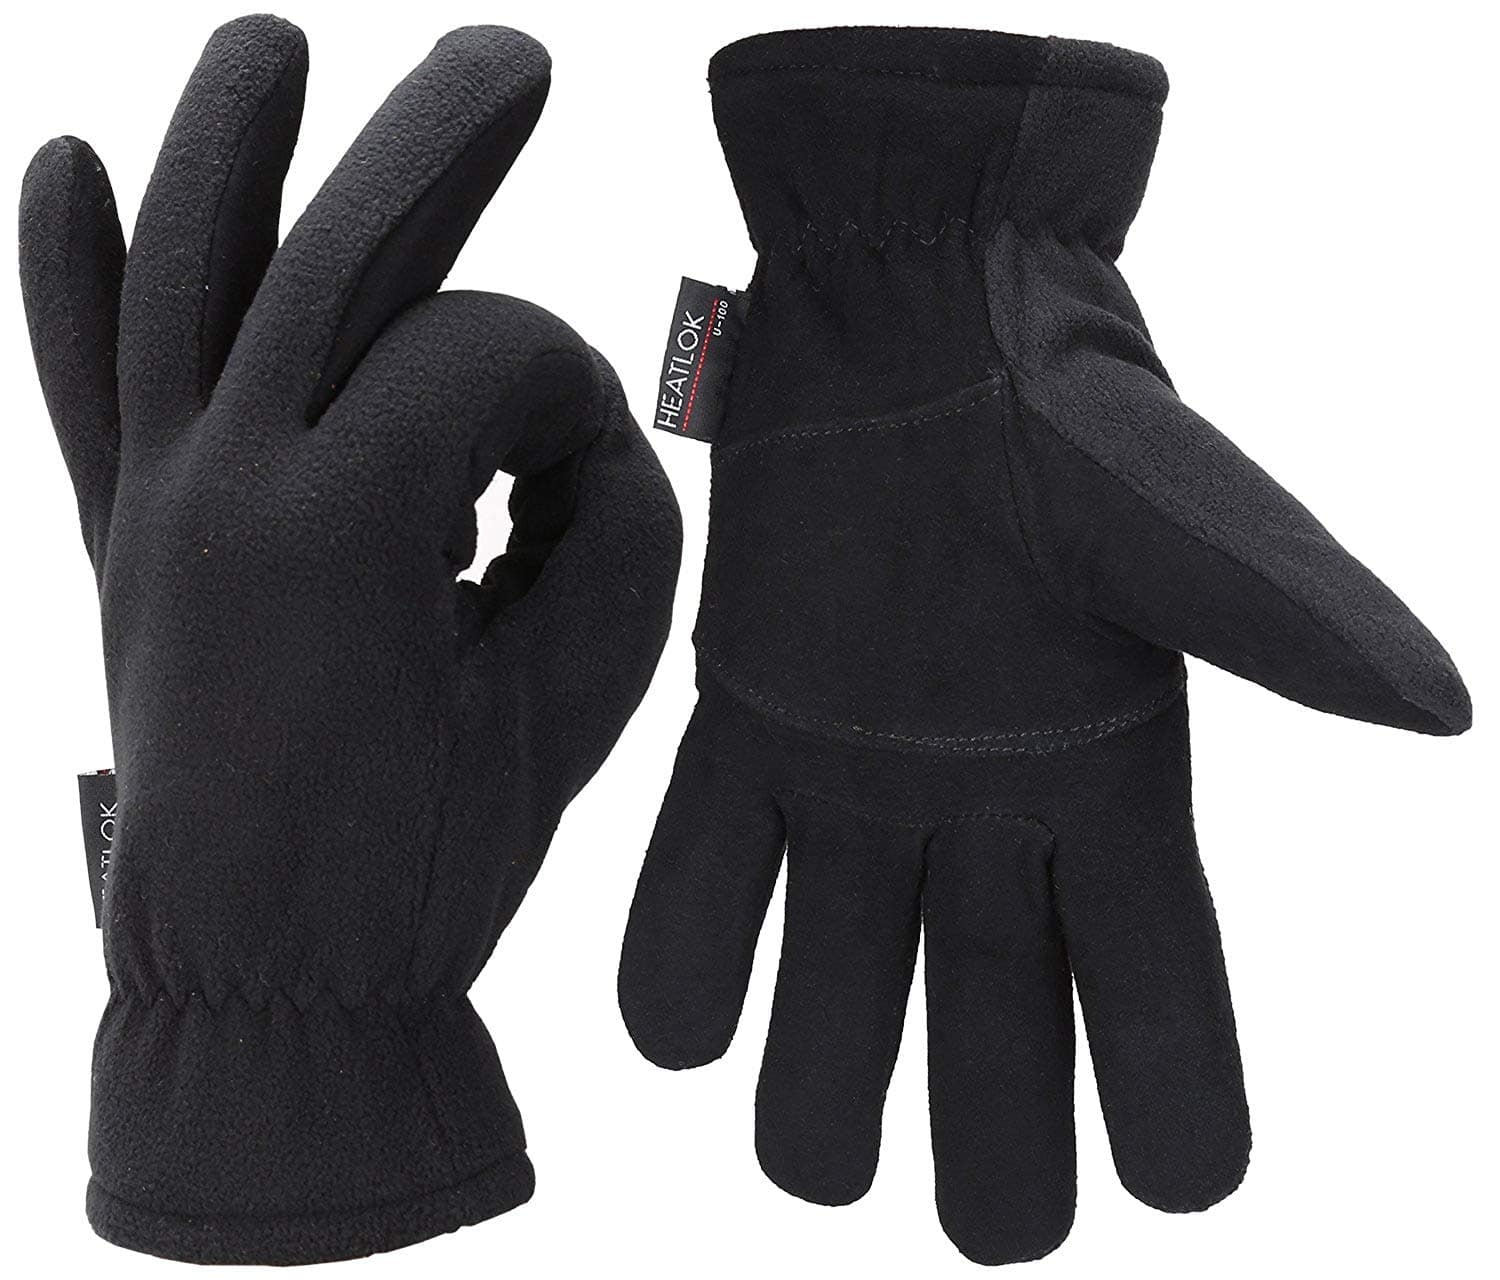 Mens Winter Gloves Cold Weather Thermal Warm Fleece Windproof Gloves $11.39